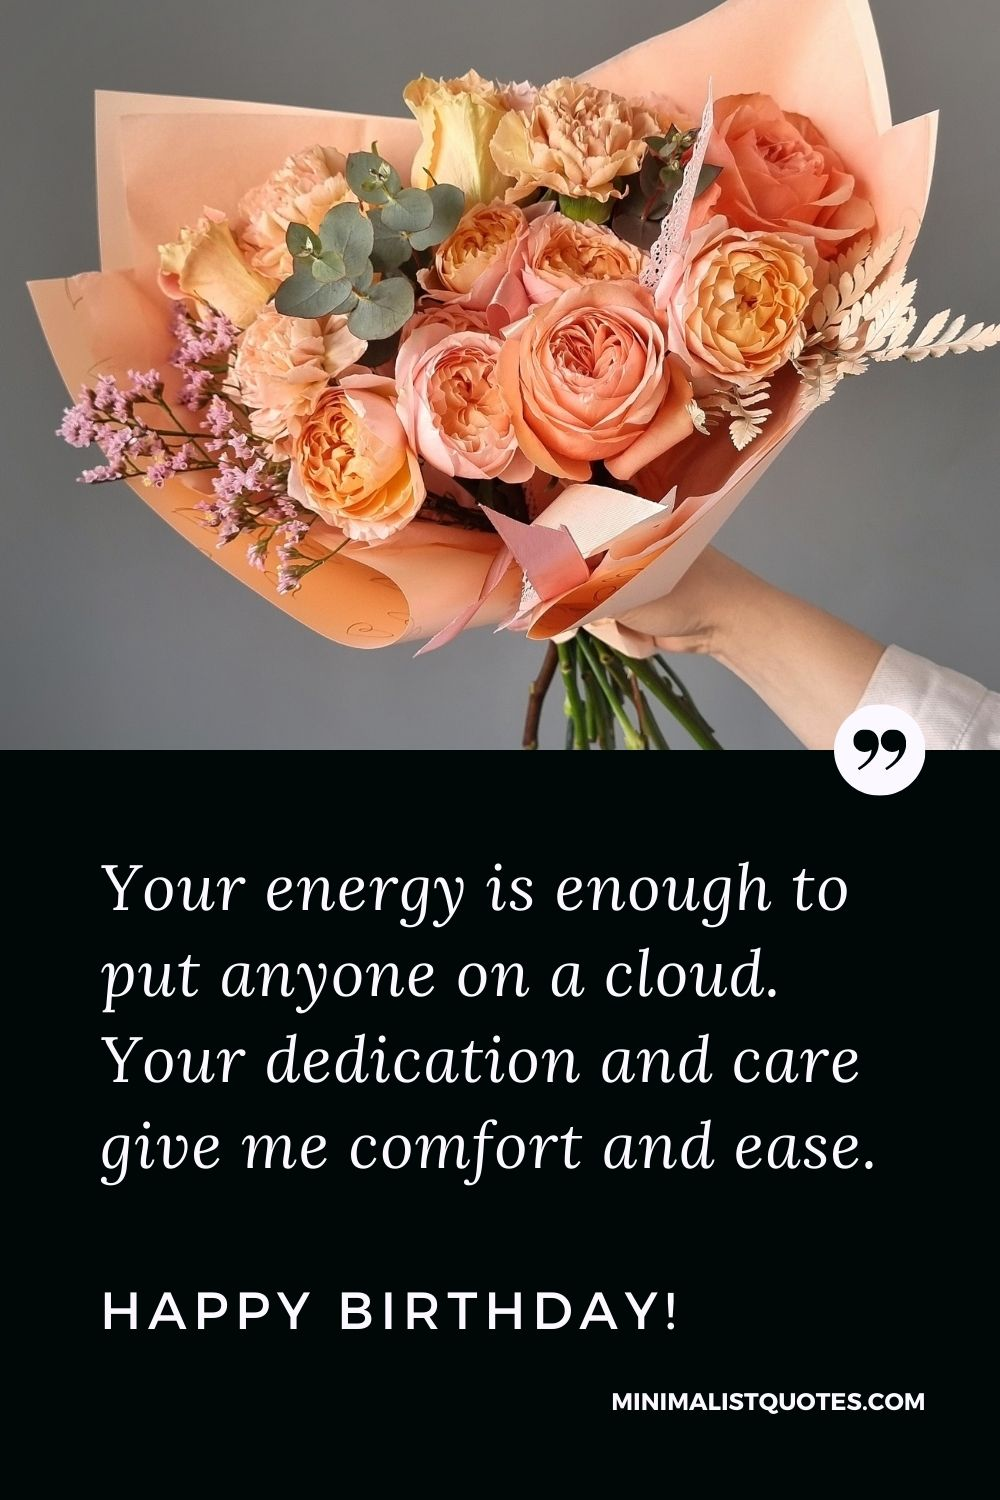 Birthday Quote, Wish & Message With Image: Your energy is enough to put anyone on a cloud. Your dedication and care give me comfort and ease. Happy Birthday!